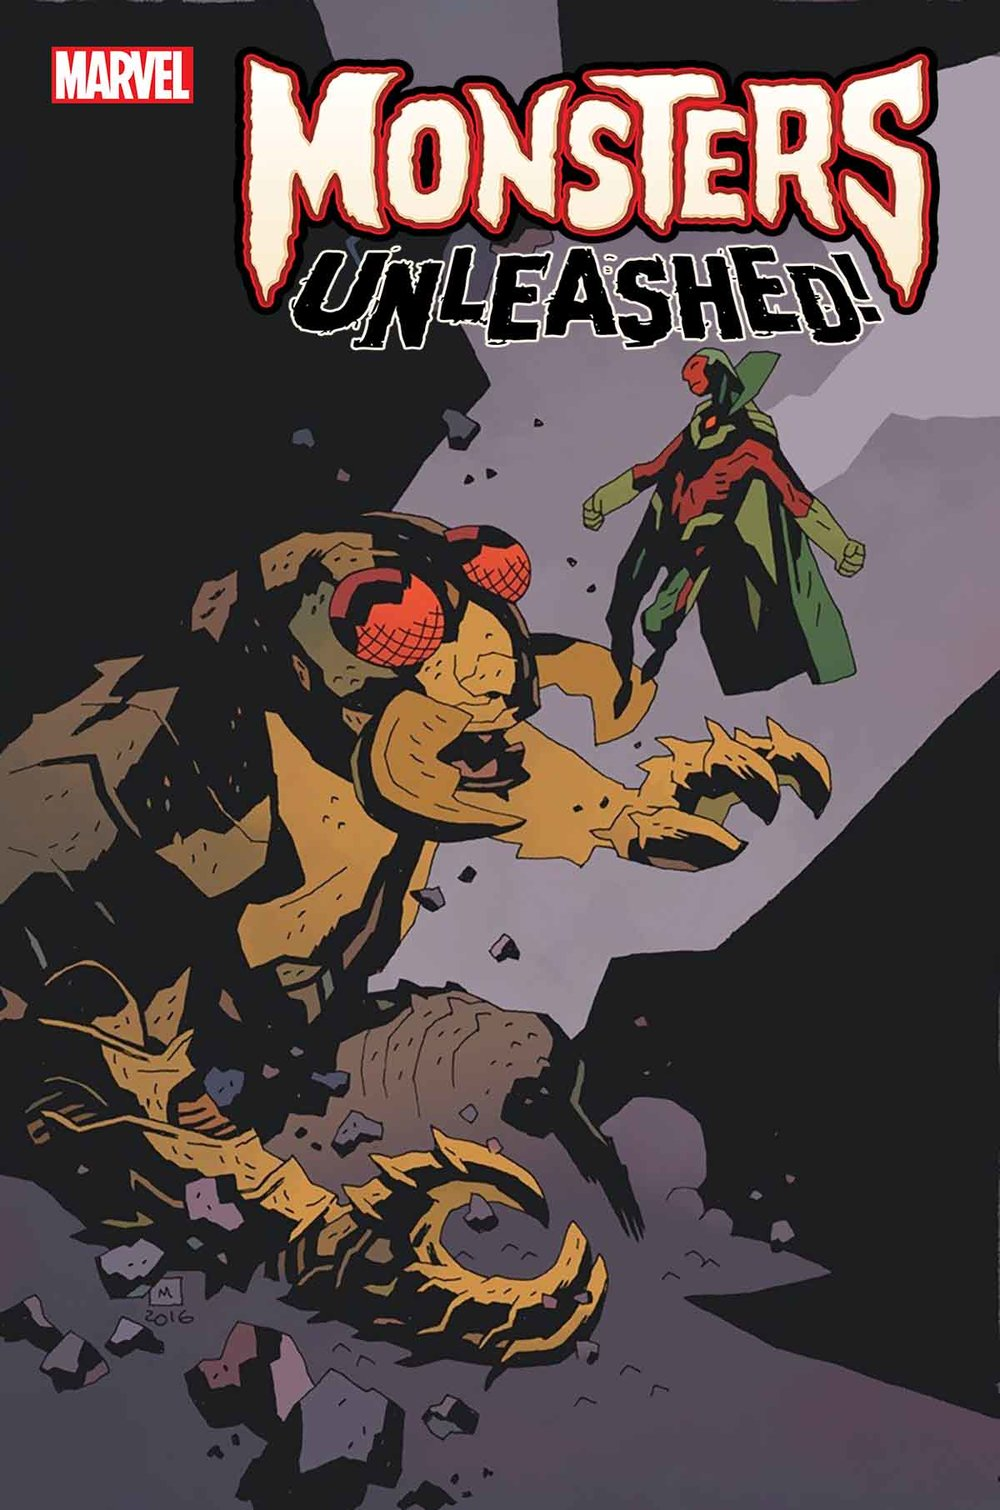 marvel-reveals-monsters-unleashed-variant-cover-art